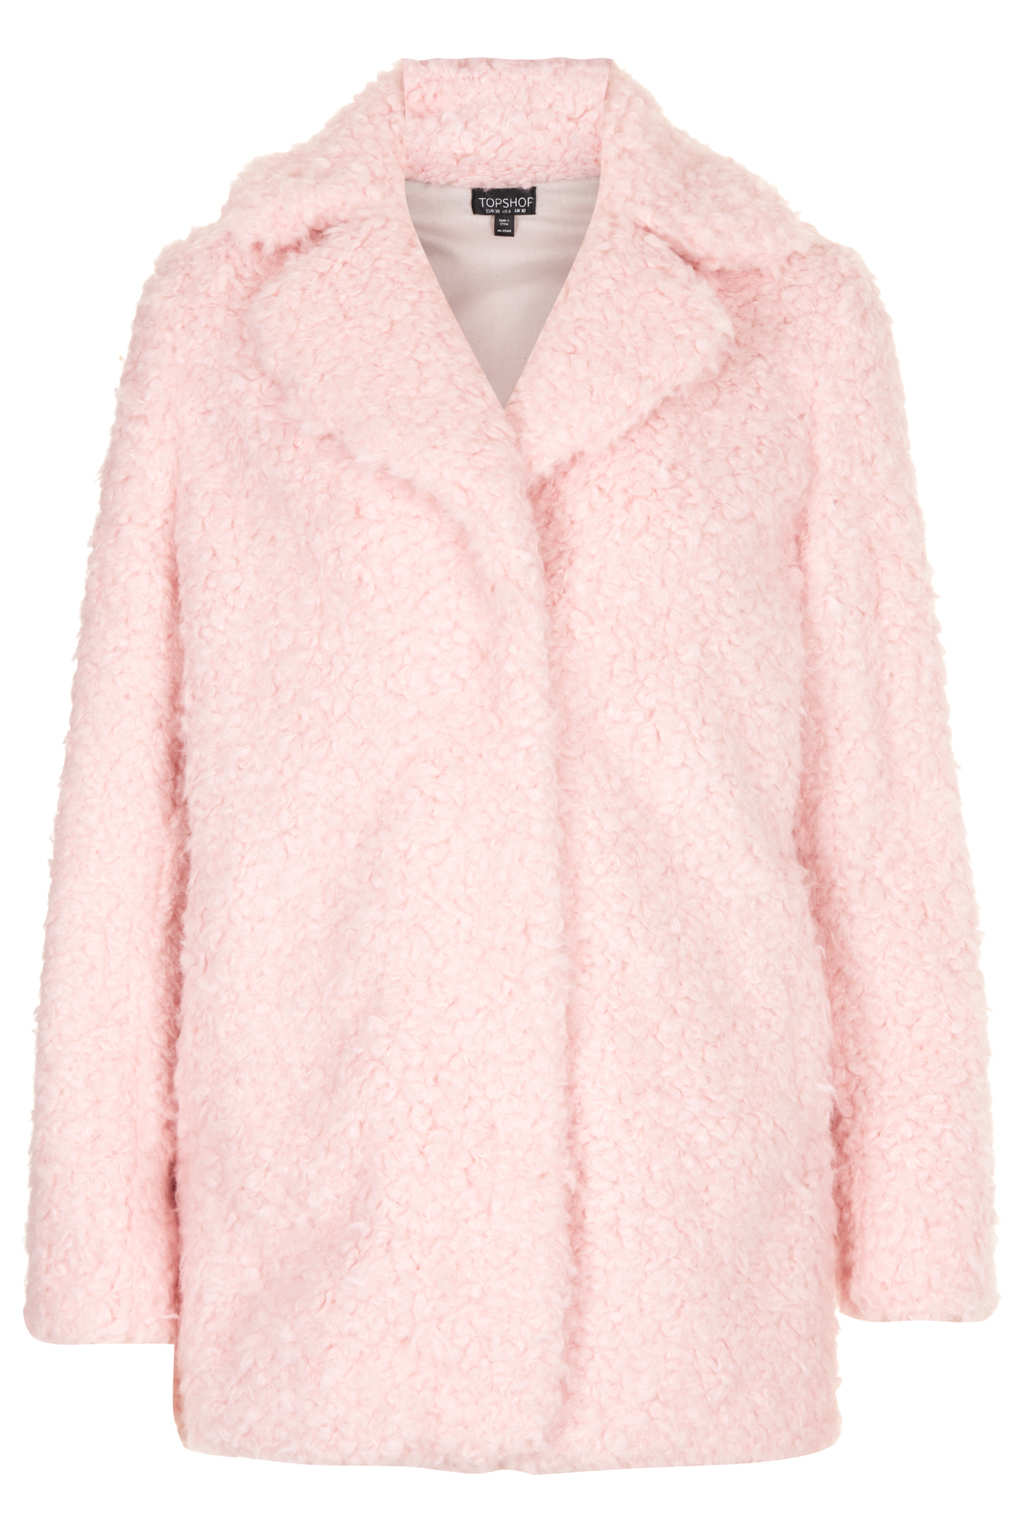 Topshop Teddy Fur Pea Coat in Pink | Lyst